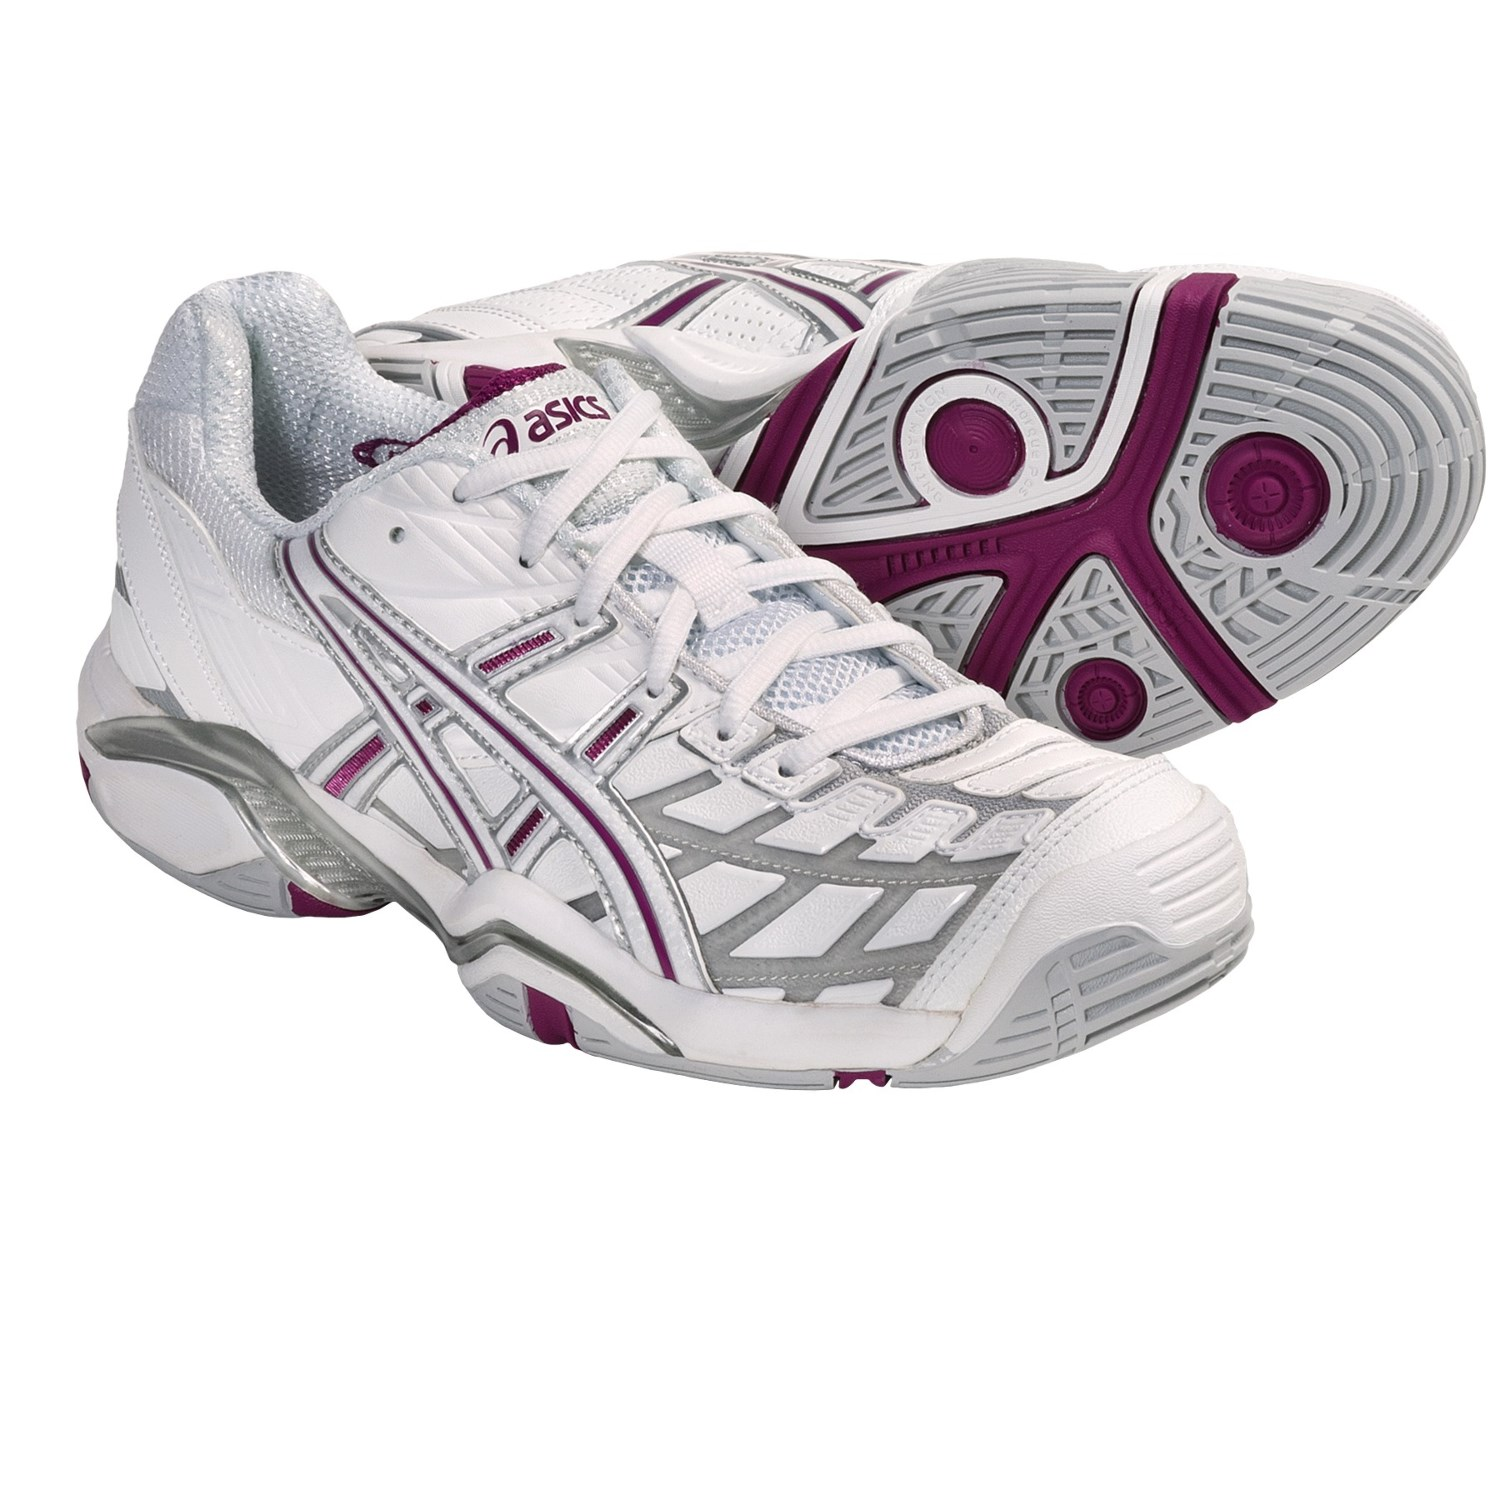 asics-gel-challenger-8-tennis-shoes-for-women-in-white-silver